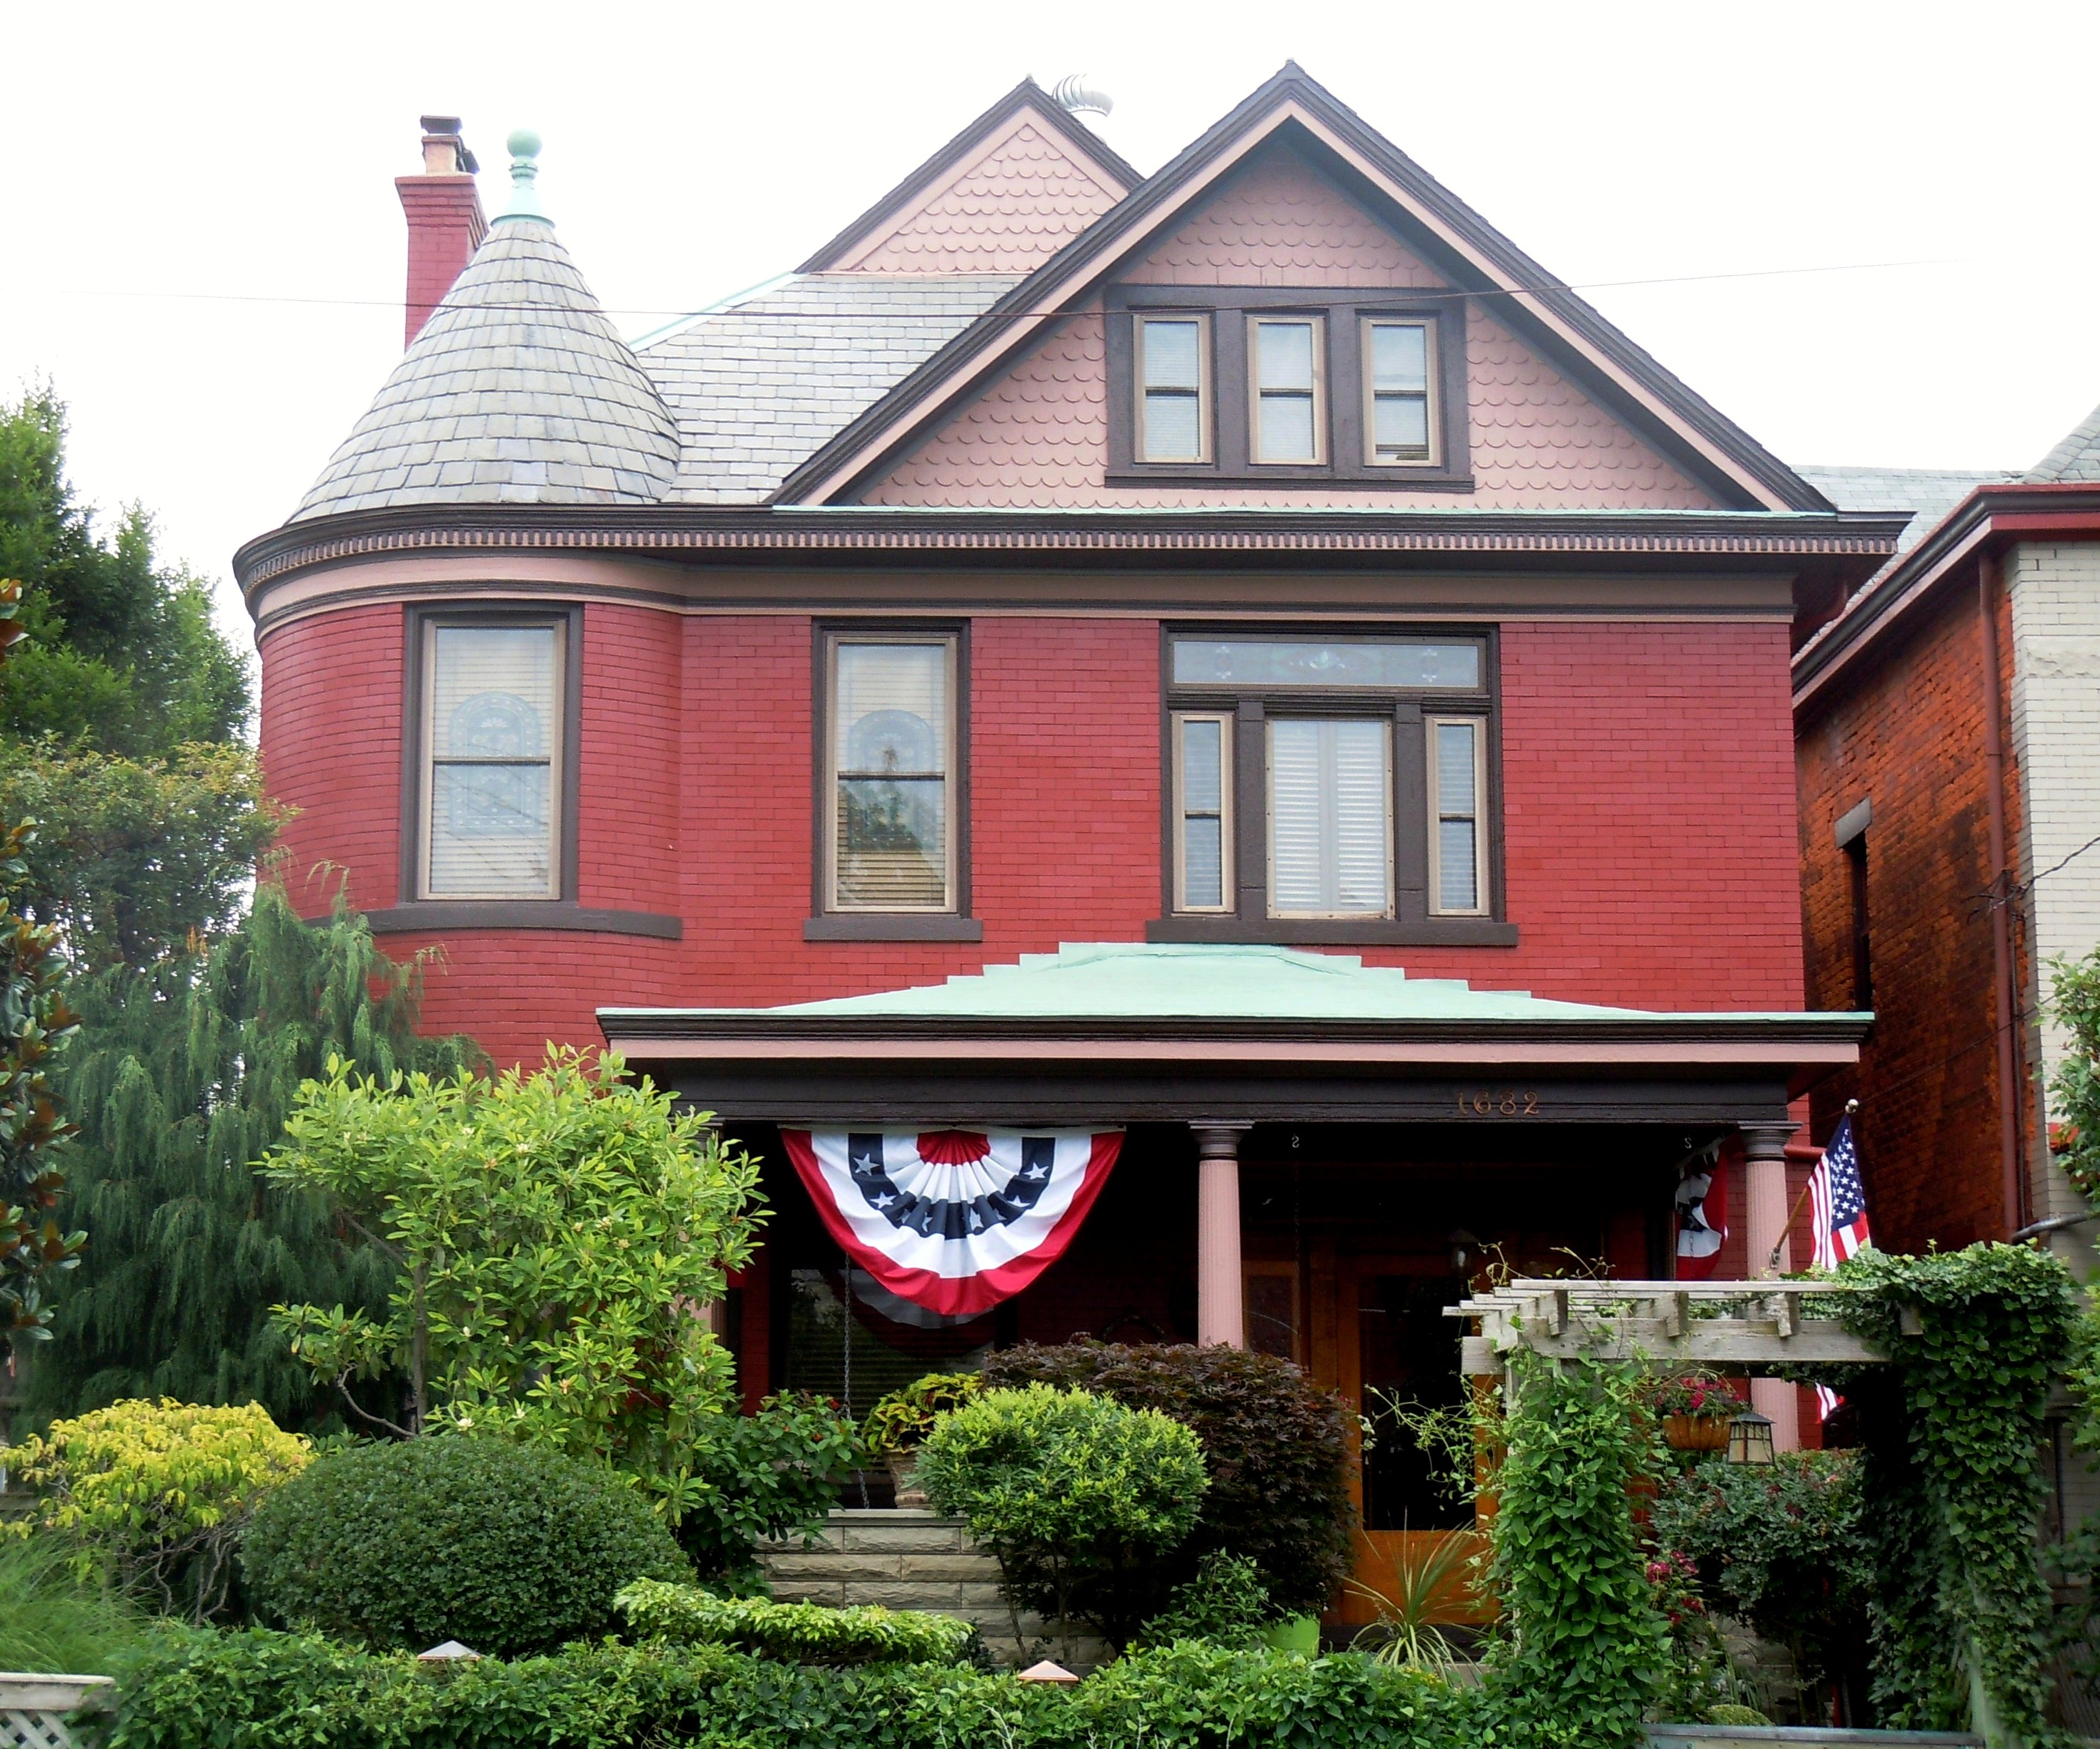 Shelton Victorian Queen Anne Cincinnati Ohio